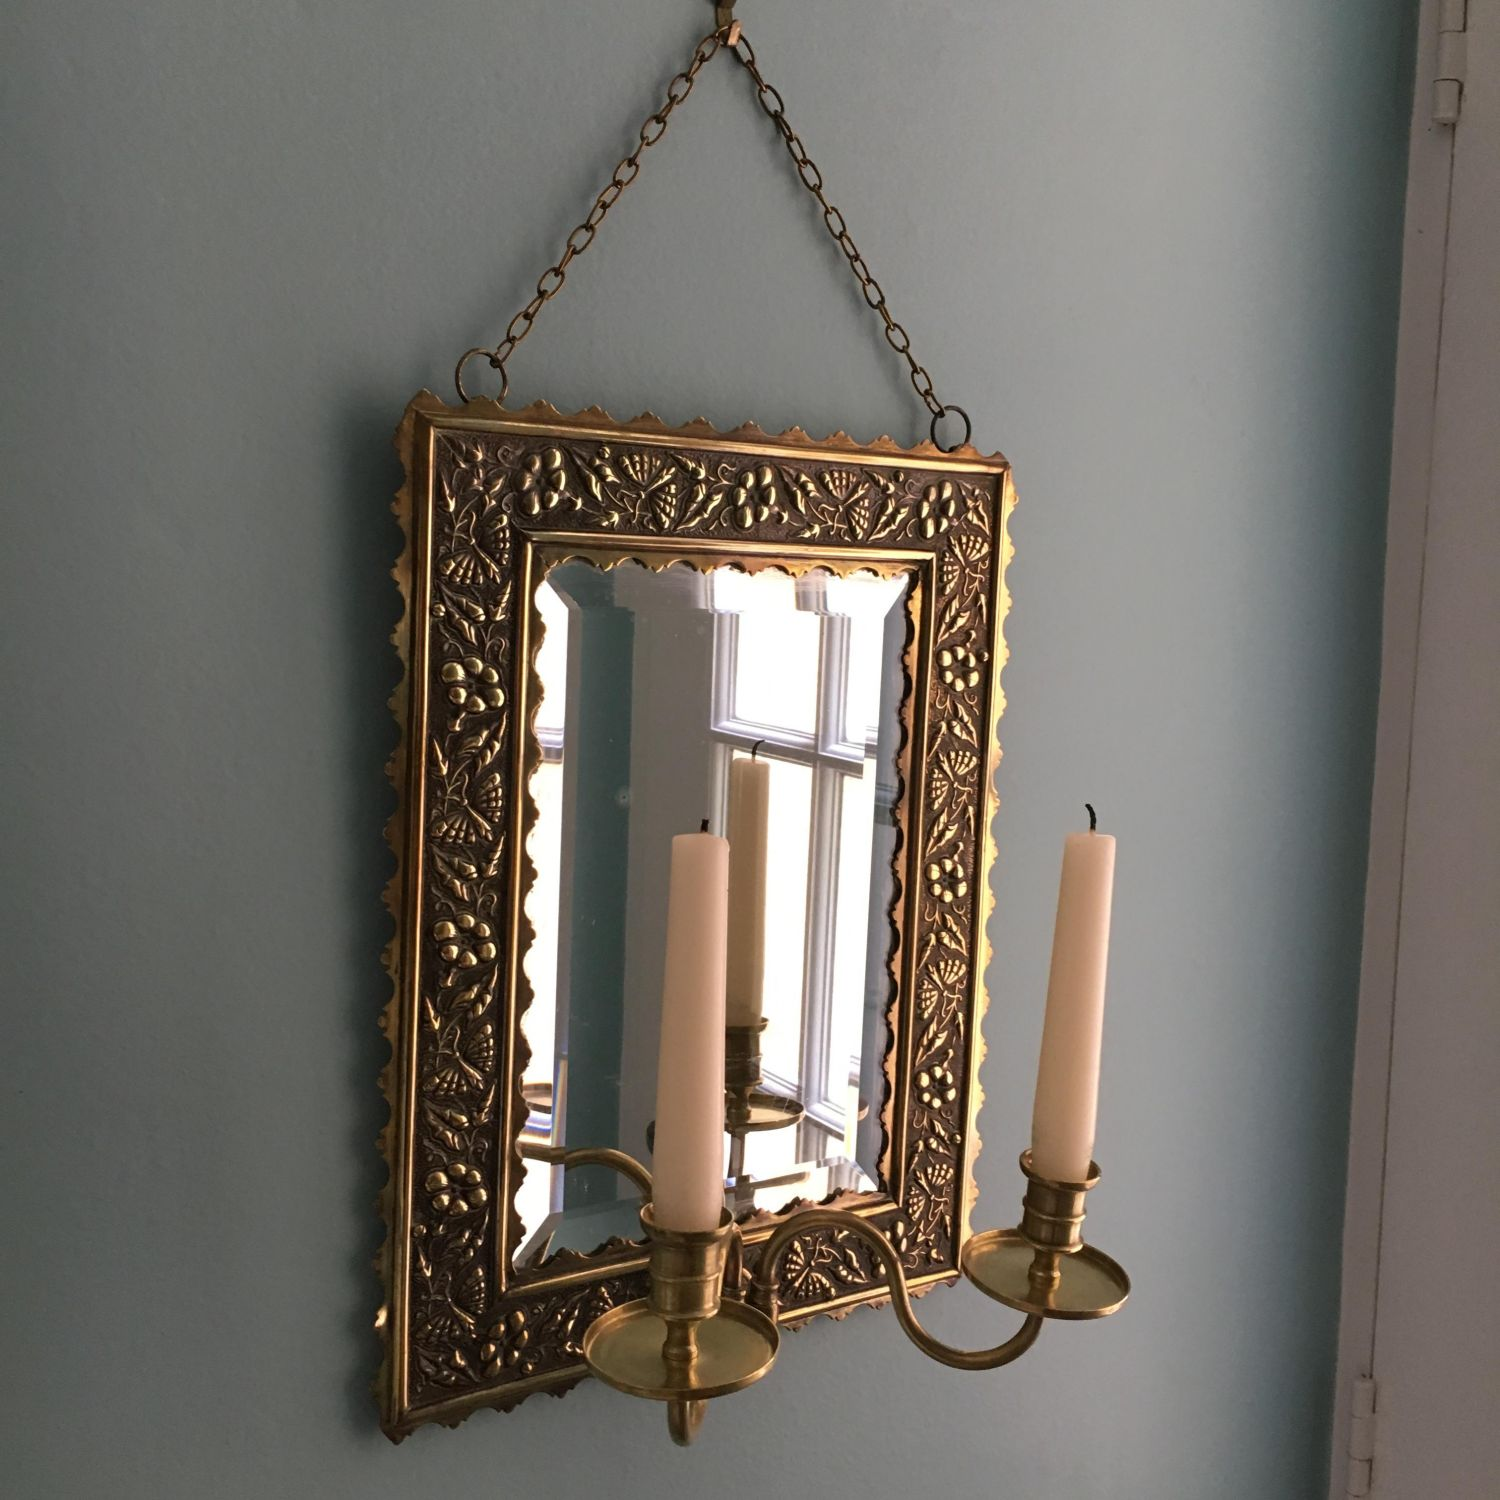 Decorative Victorian Aesthetic Brass Girandole Mirror